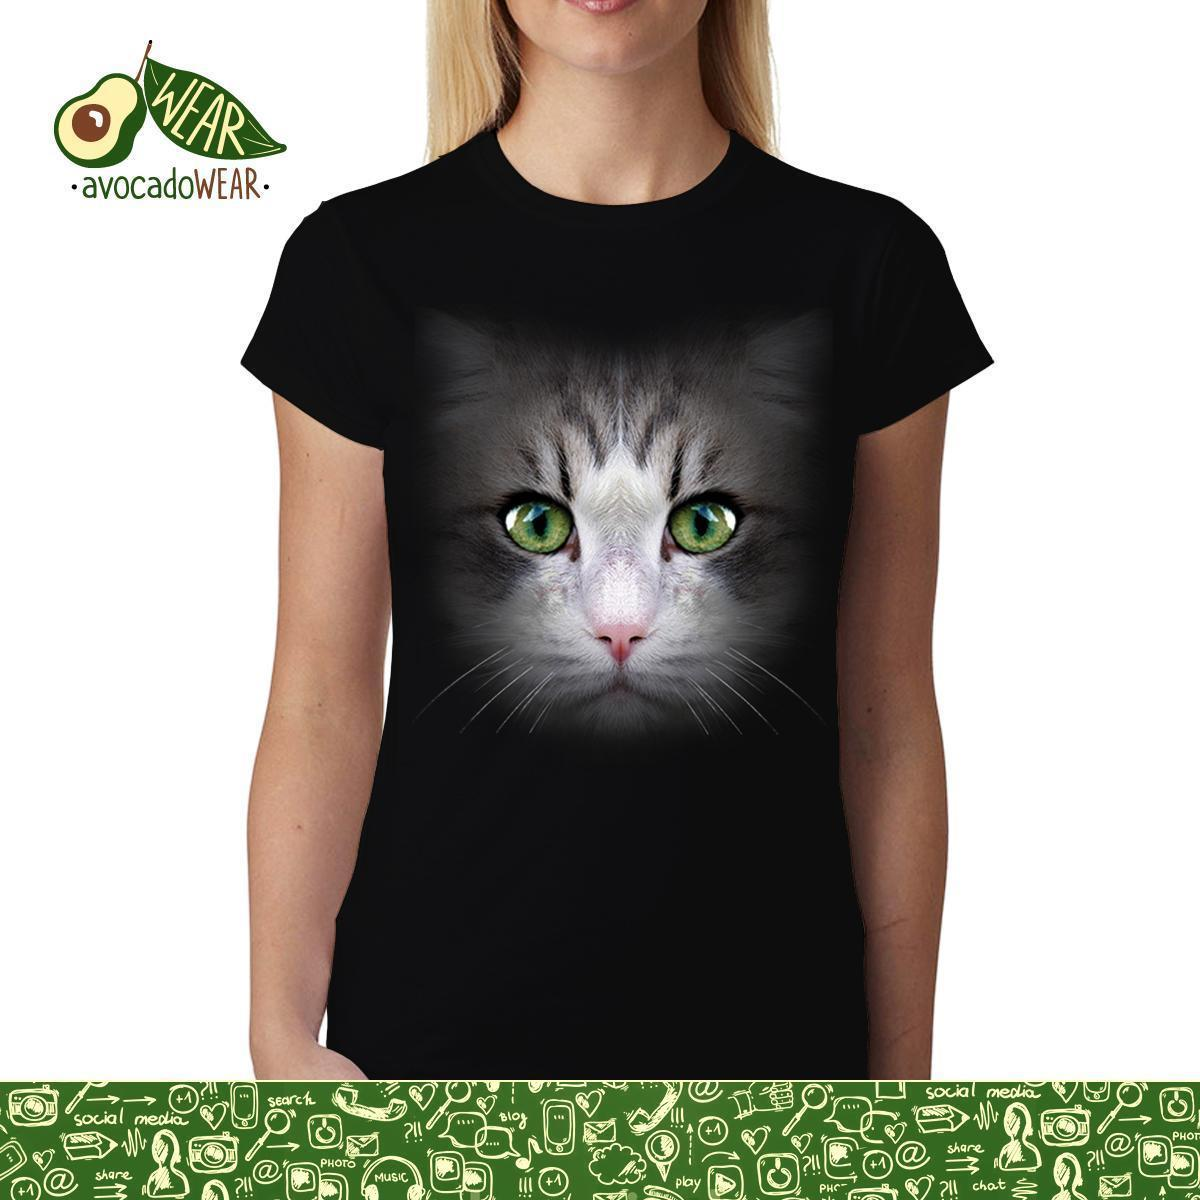 8c313acf7ebe Cat Face Green Eye Animals Women Men T Shirt S 3xl T Shirts Funny Tops Tee  New Unisexy High Quality Casual Printing 100% Cotton White Shirt Tee Shirts  From ...